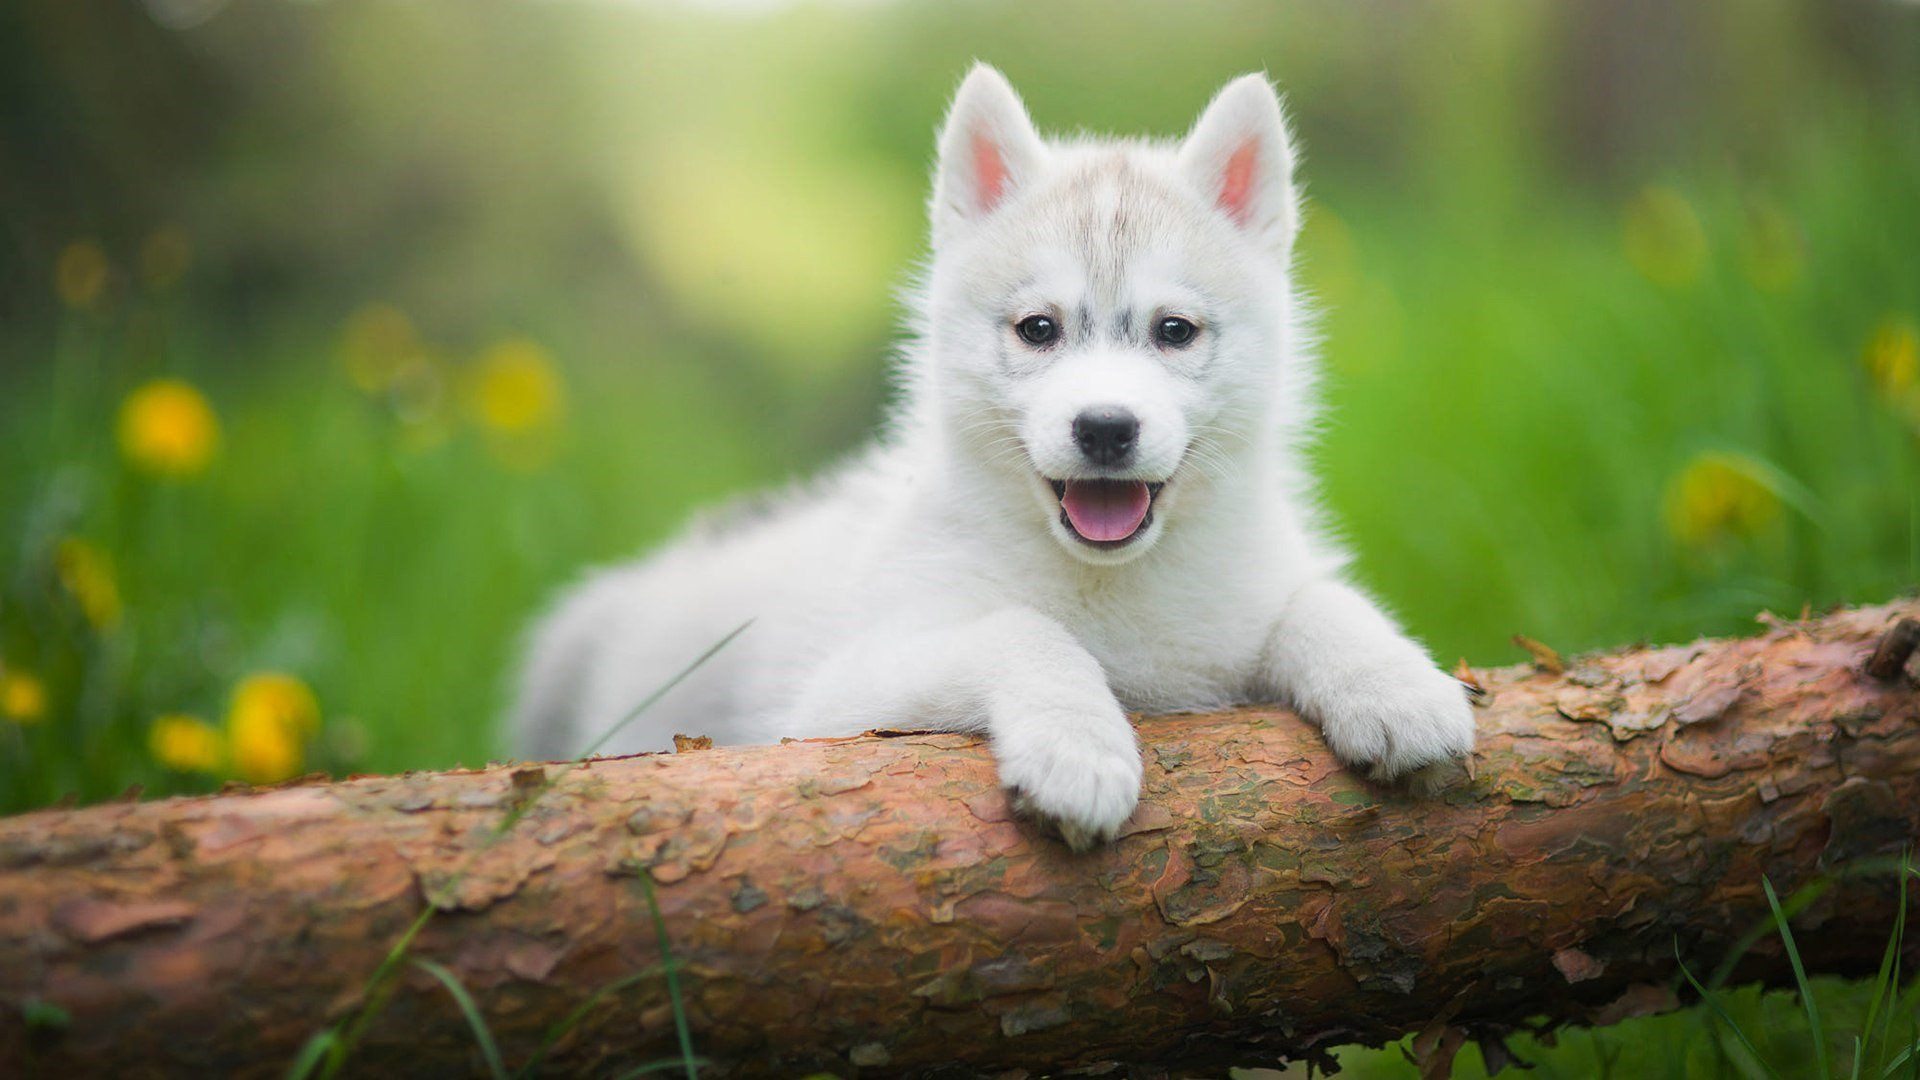 Husky Baby Wallpaper 1920x1080 Chien Animaux